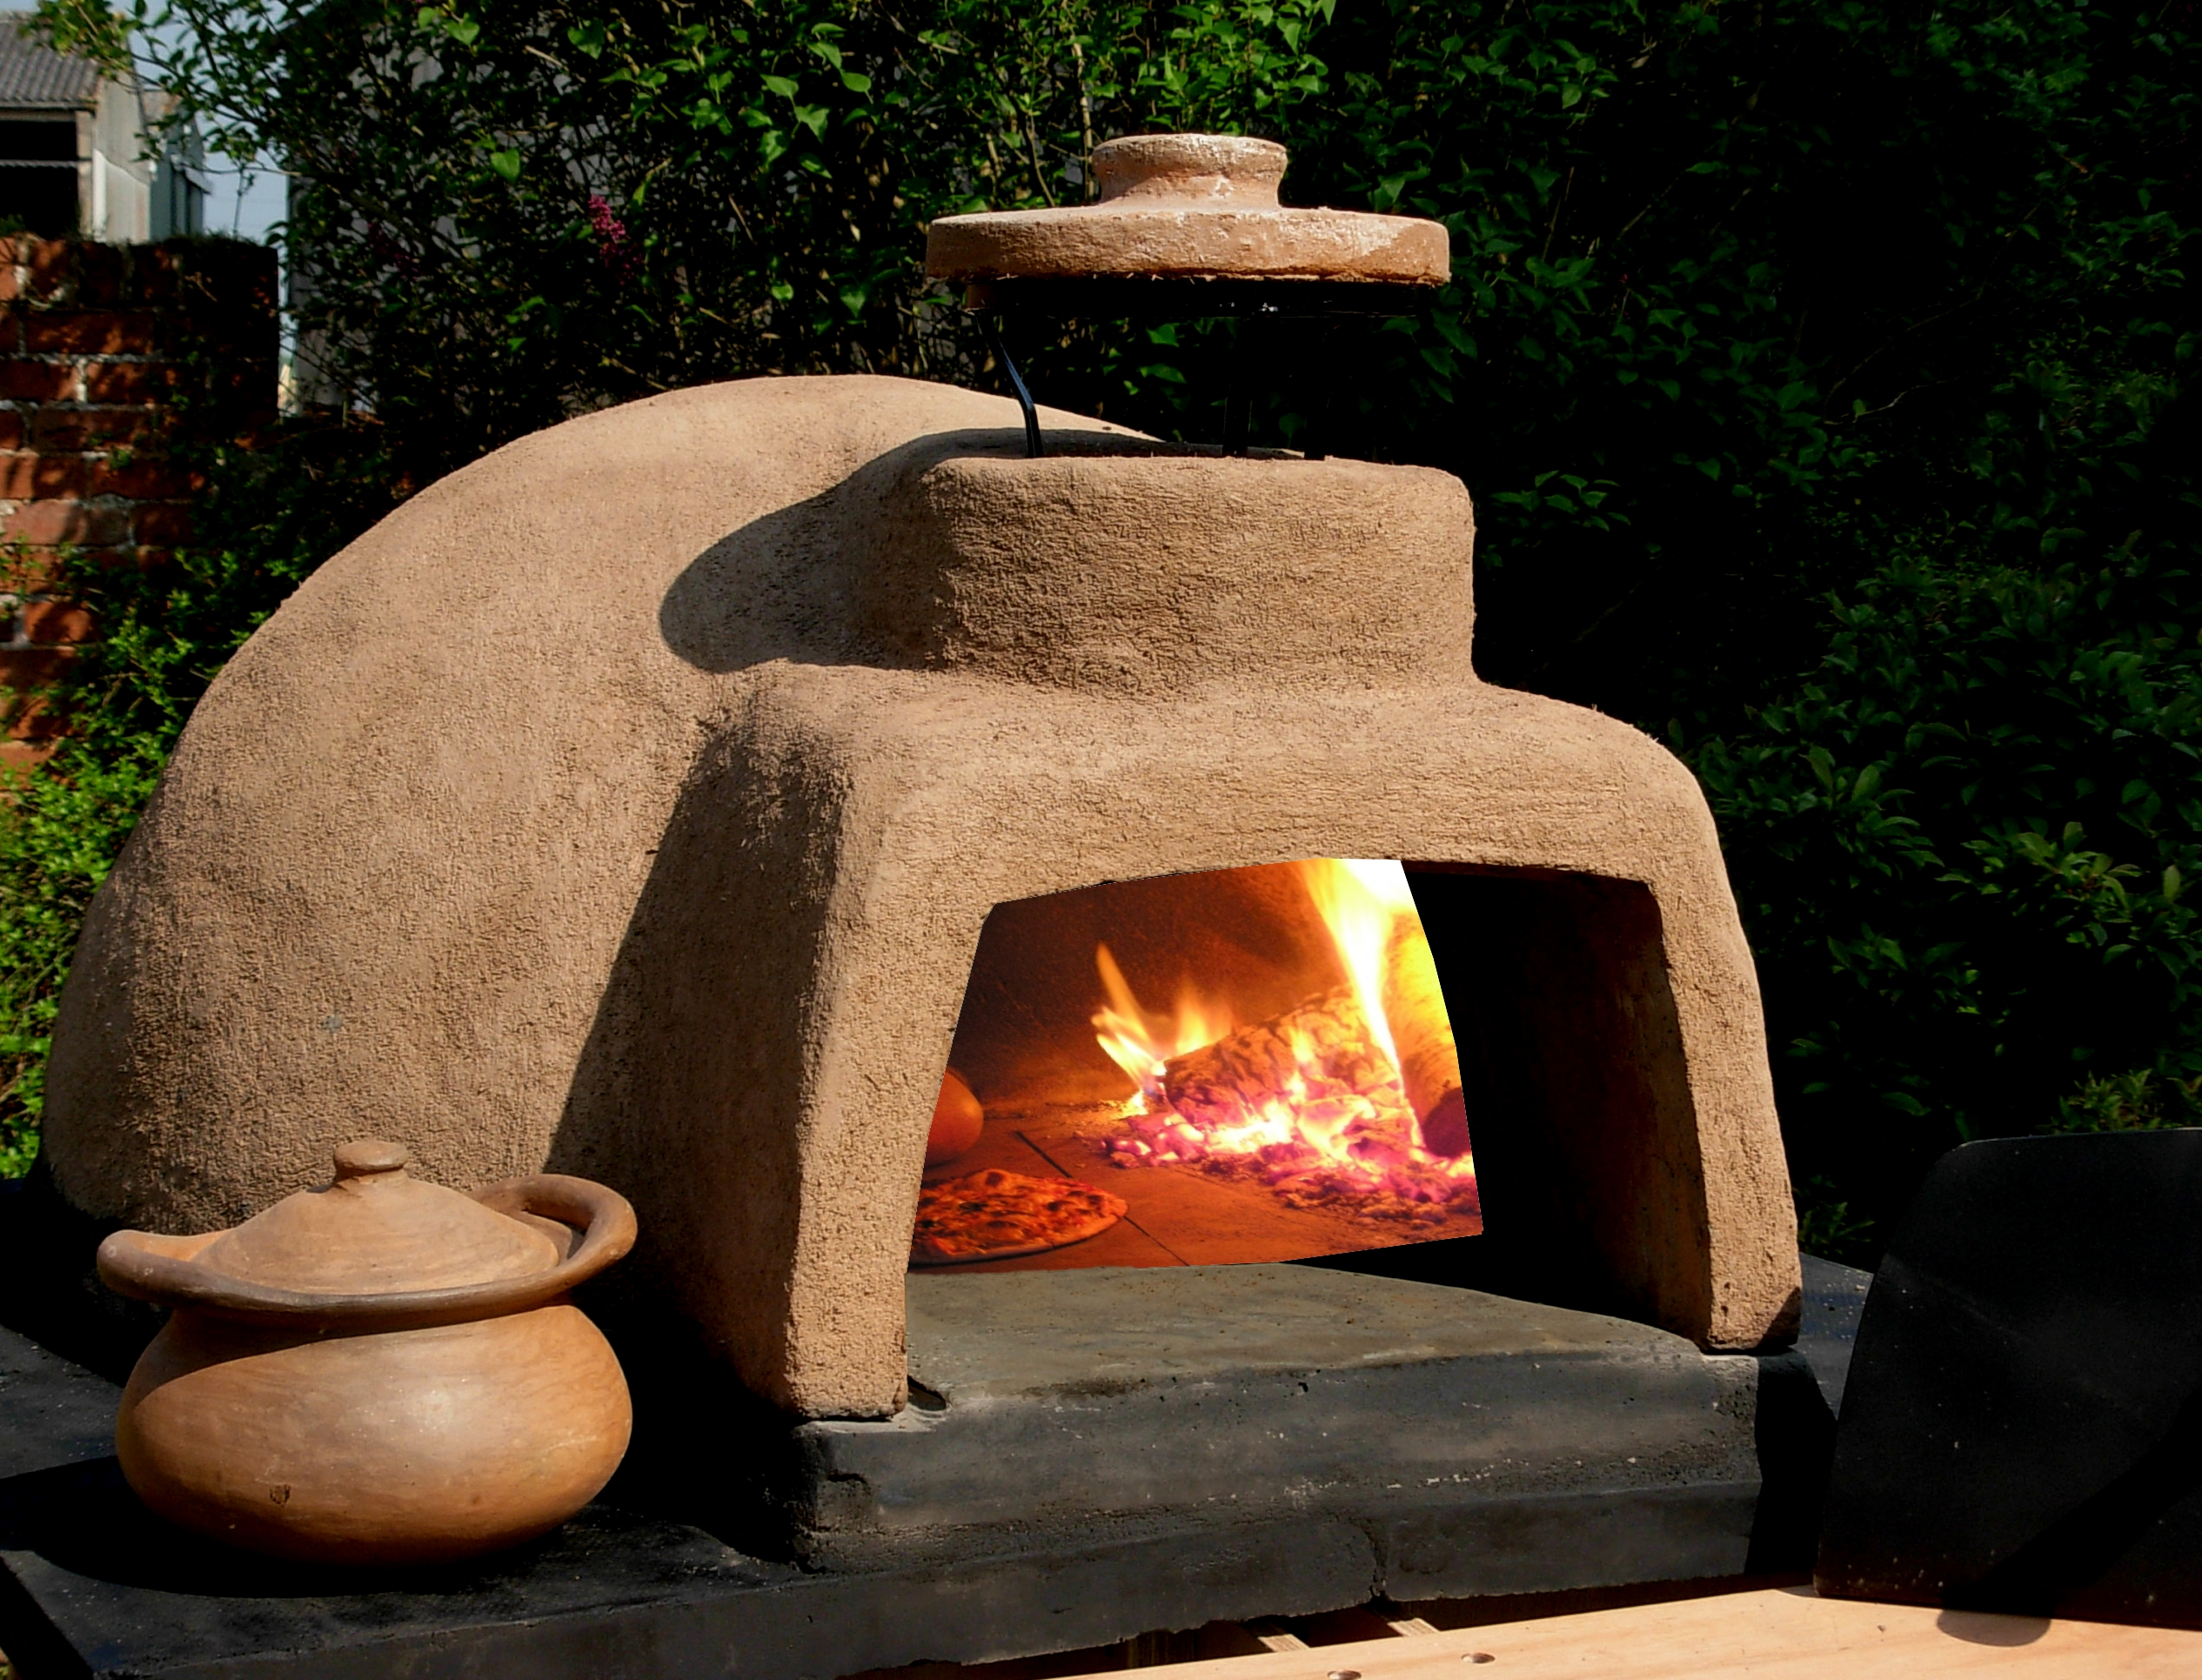 15 Diy Pizza Oven Plans For Outdoors Backing